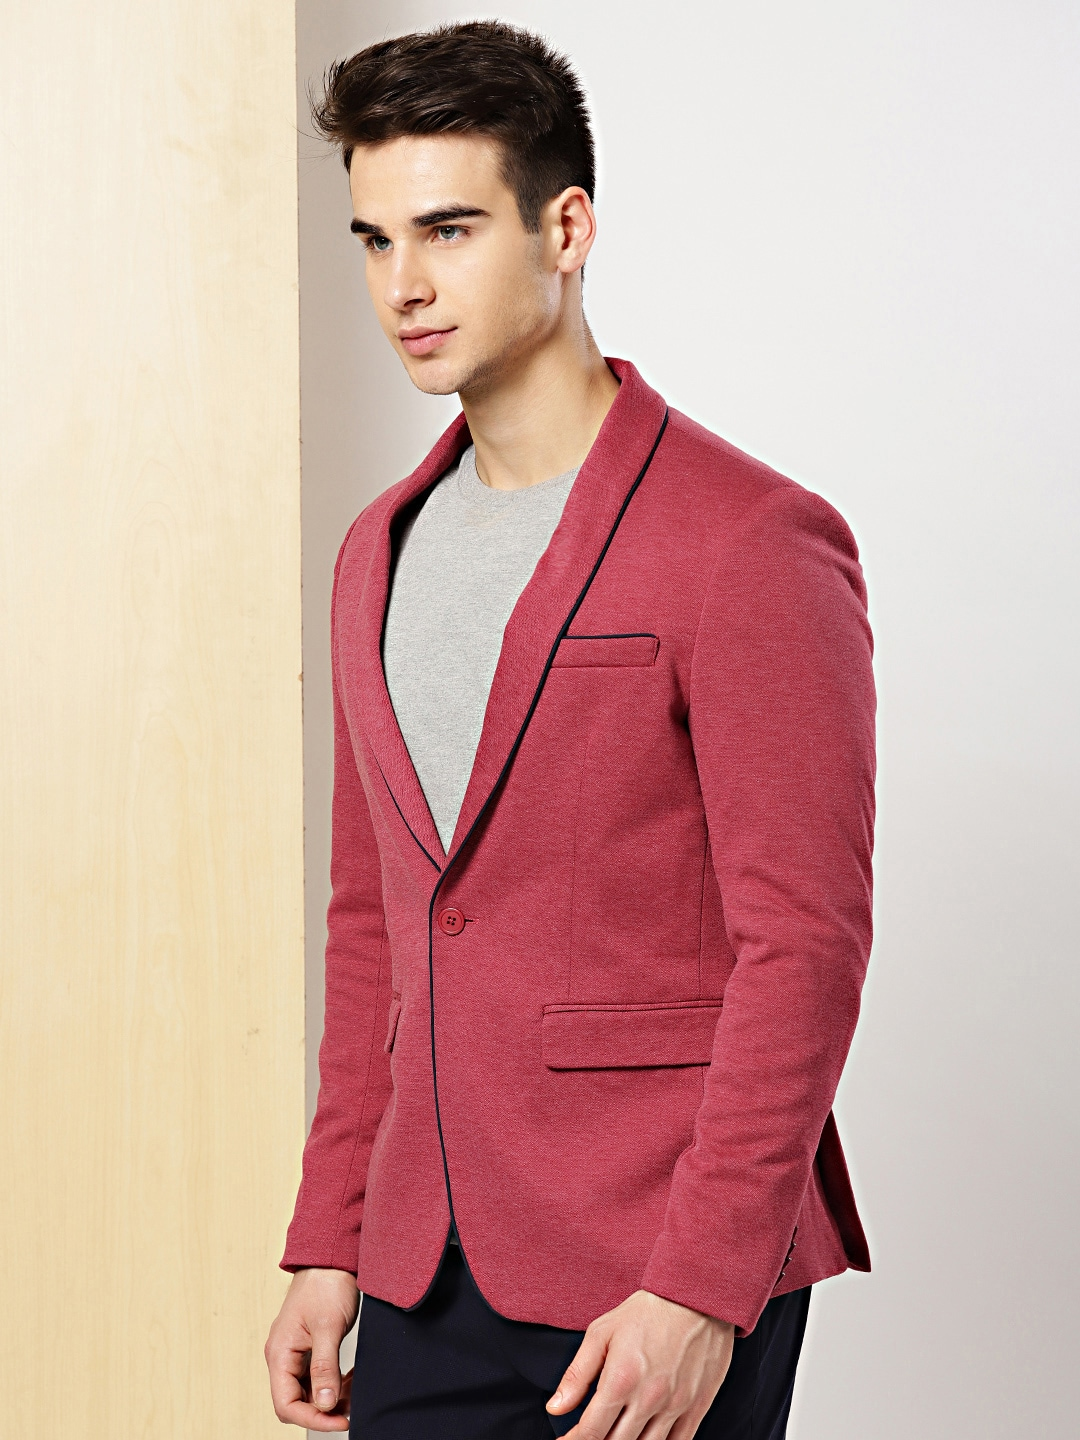 bfd3a2a7e807 Blazers - Buy Blazer Online at Best Price in India